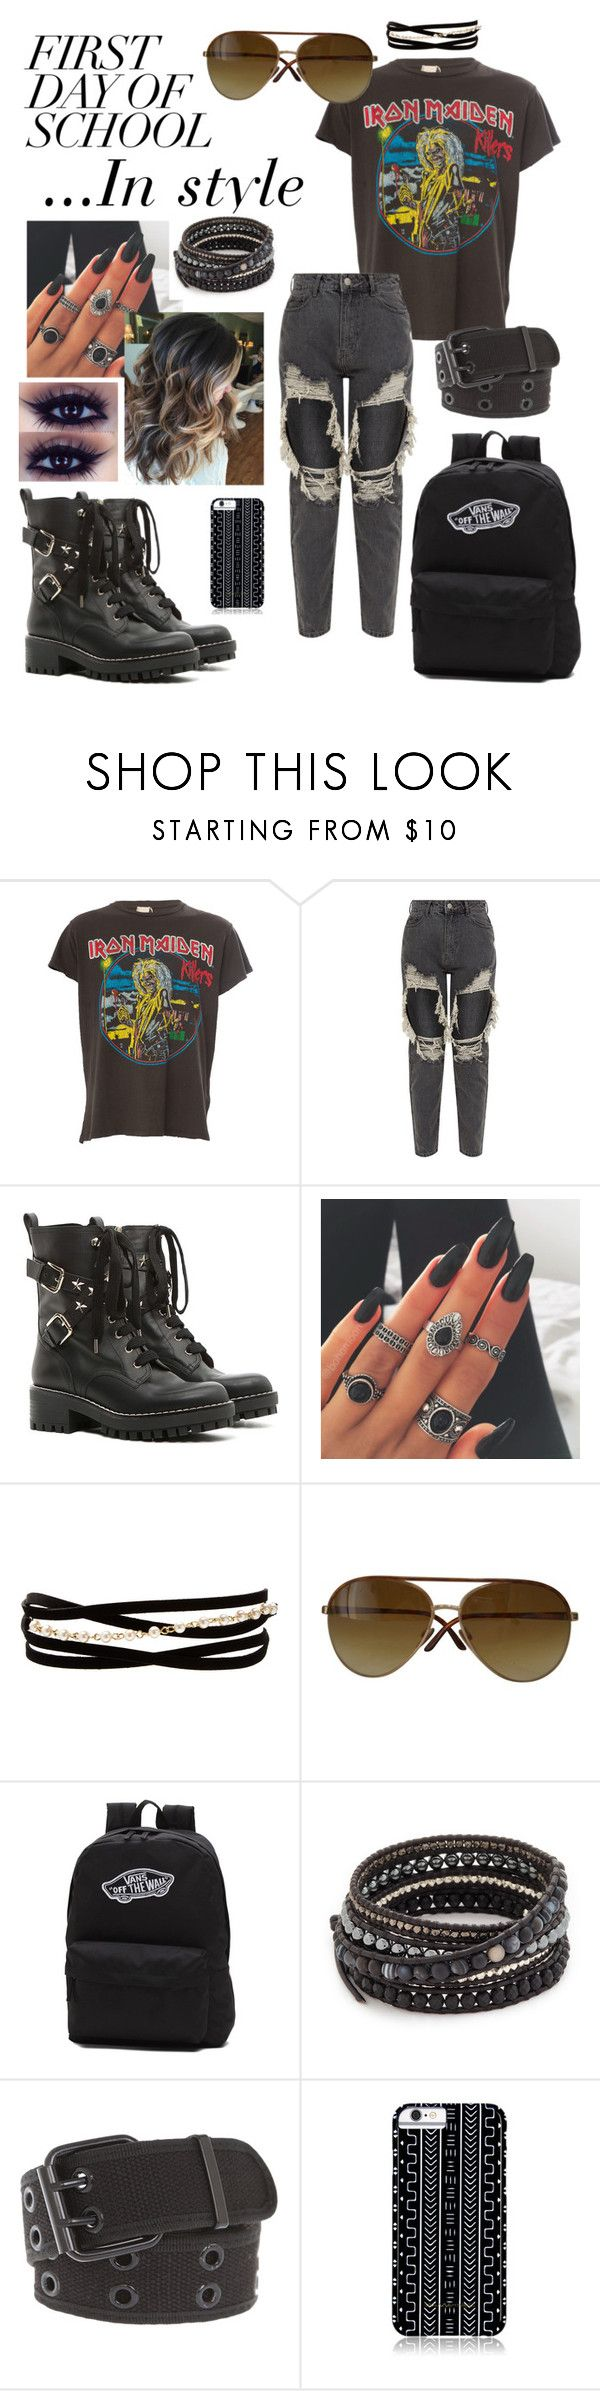 """""""Untitled #340"""" by salute-rock ❤ liked on Polyvore featuring MadeWorn, RED Valentino, Kenneth Jay Lane, Tom Ford, Vans, Chan Luu, Hot Topic and Savannah Hayes"""